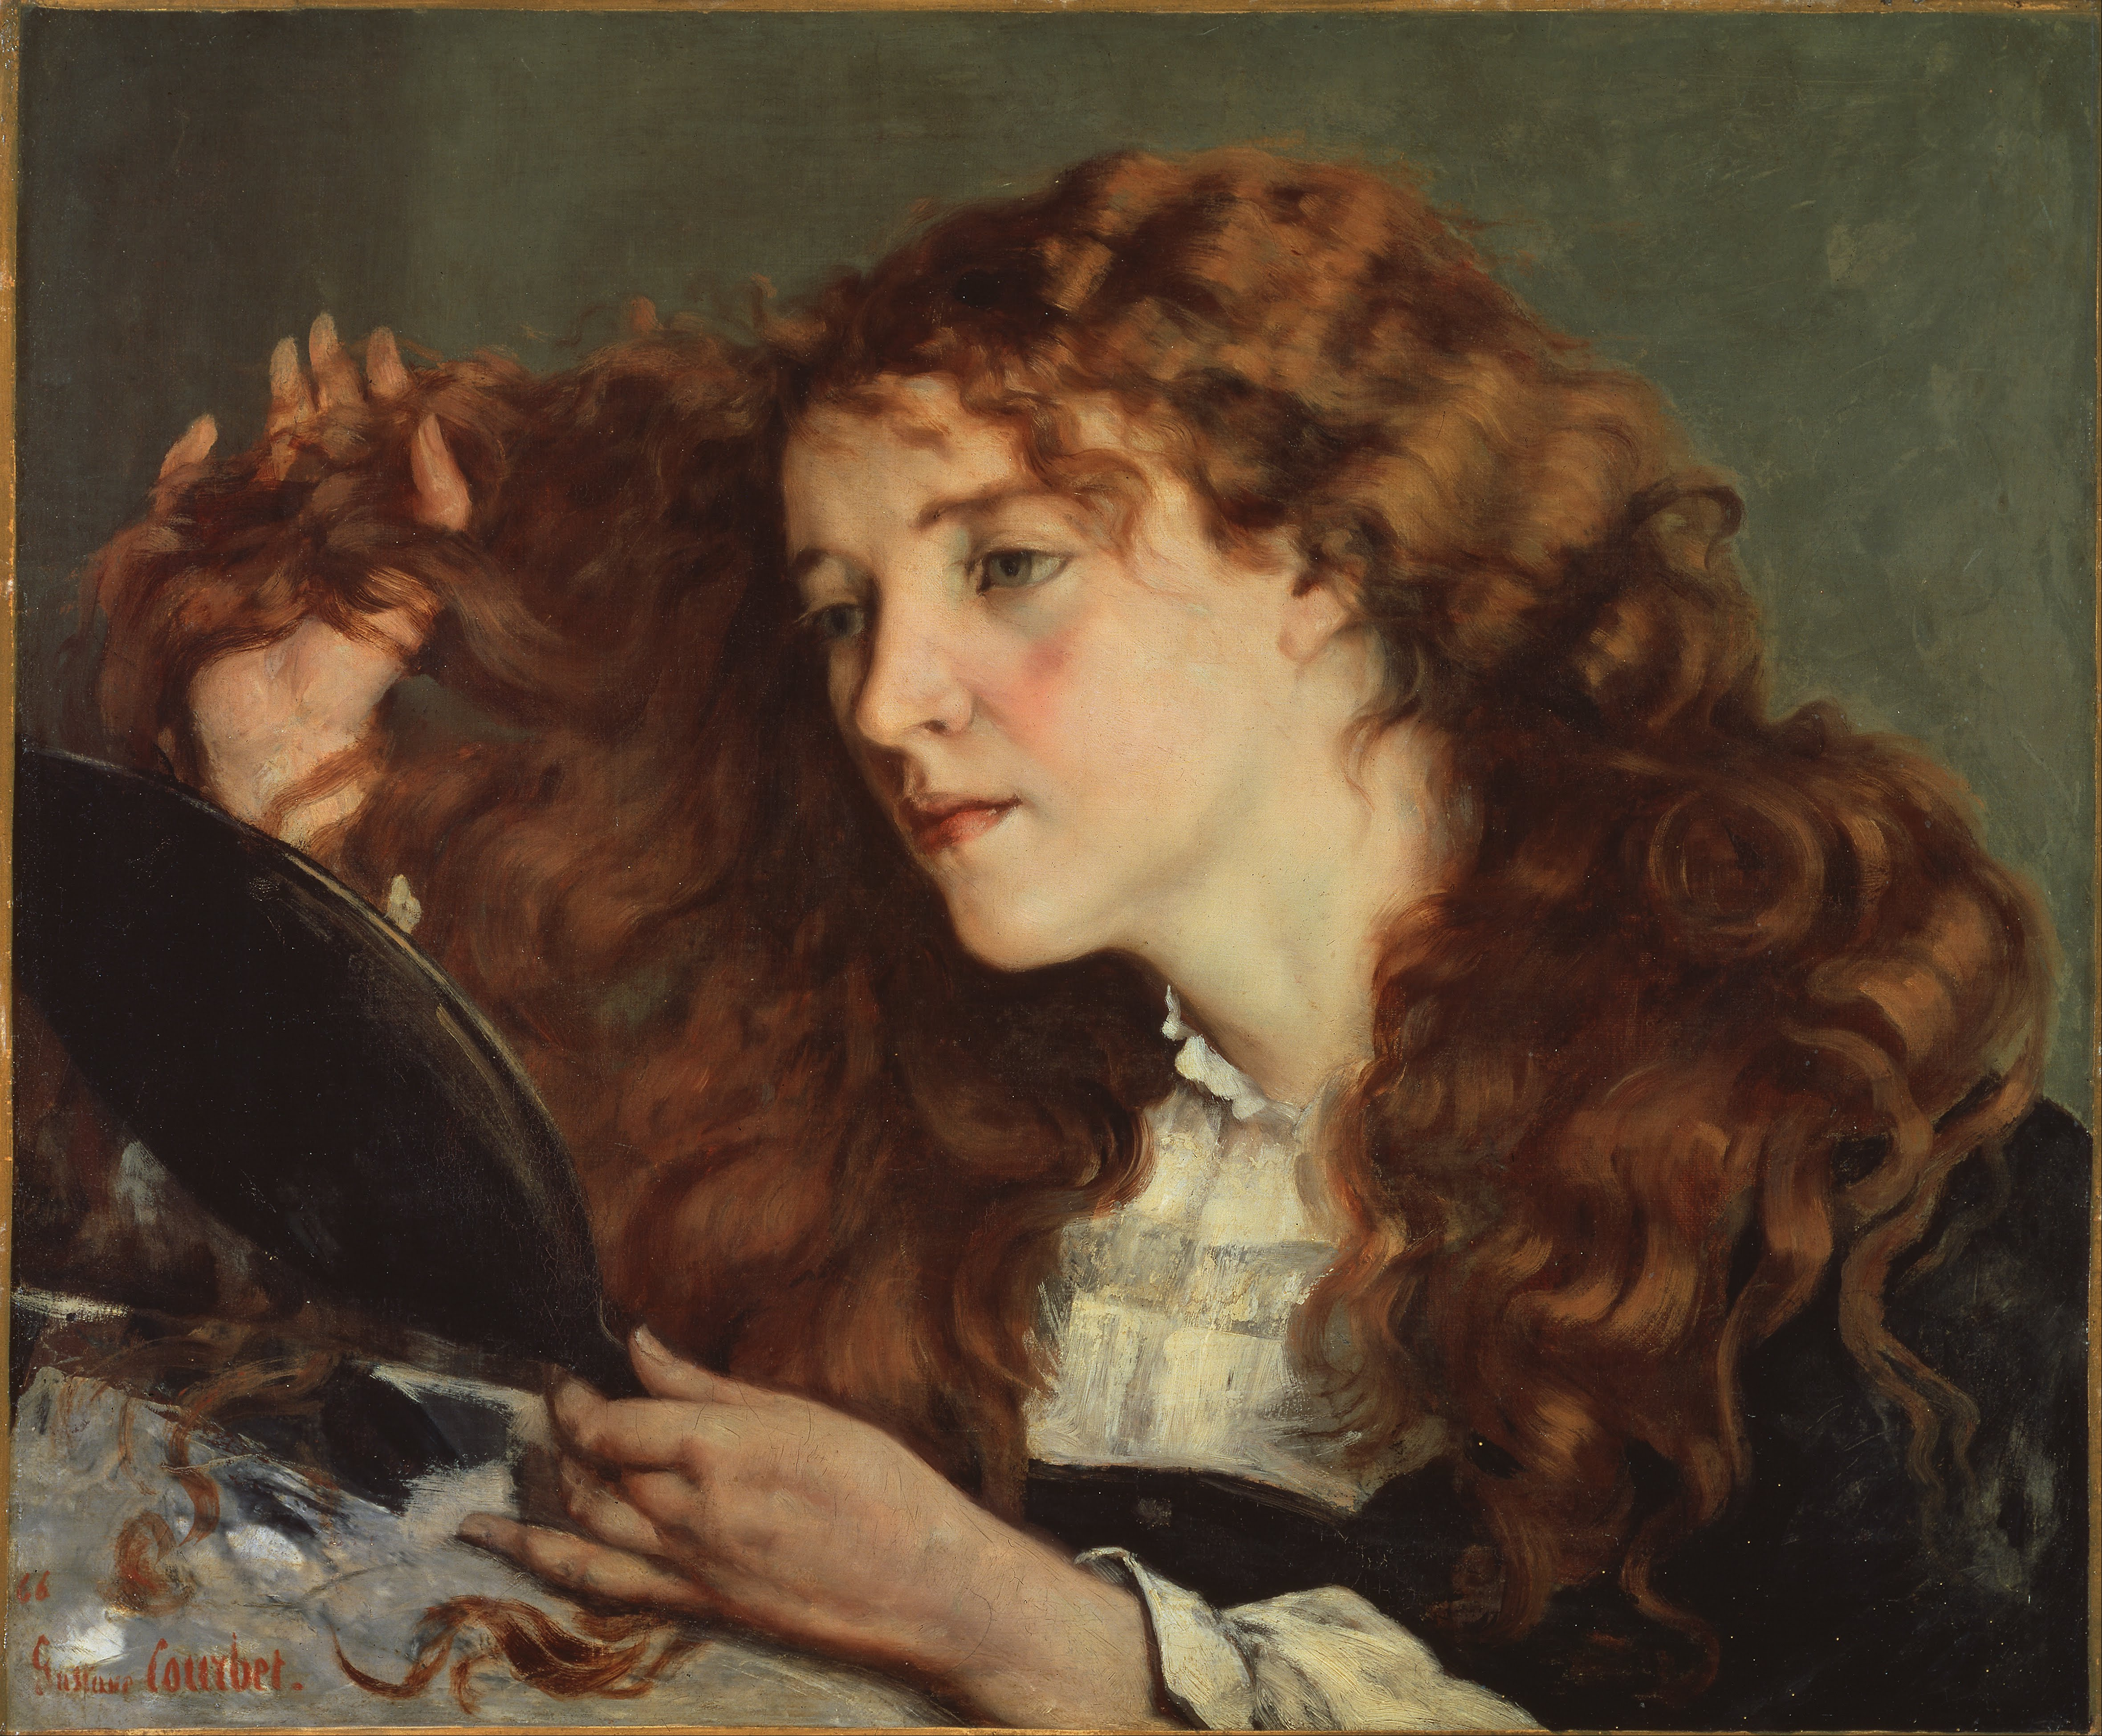 Naturalism in art throughout the ages